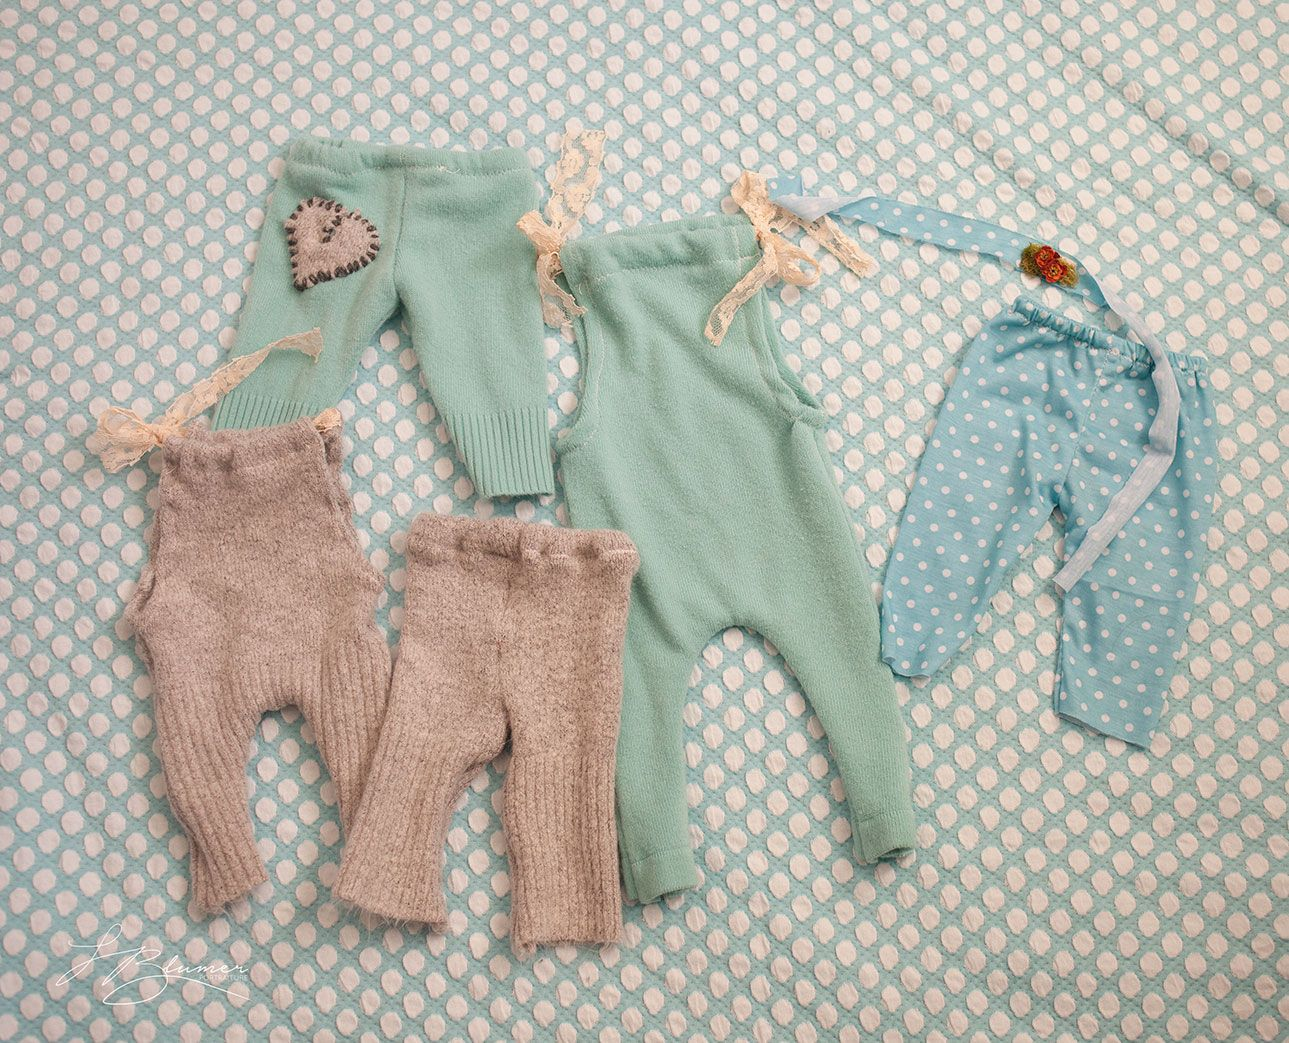 Leslie from Blumer Portraiture shows you step-by-step how to upcycle old sweaters into baby rompers and leggings.